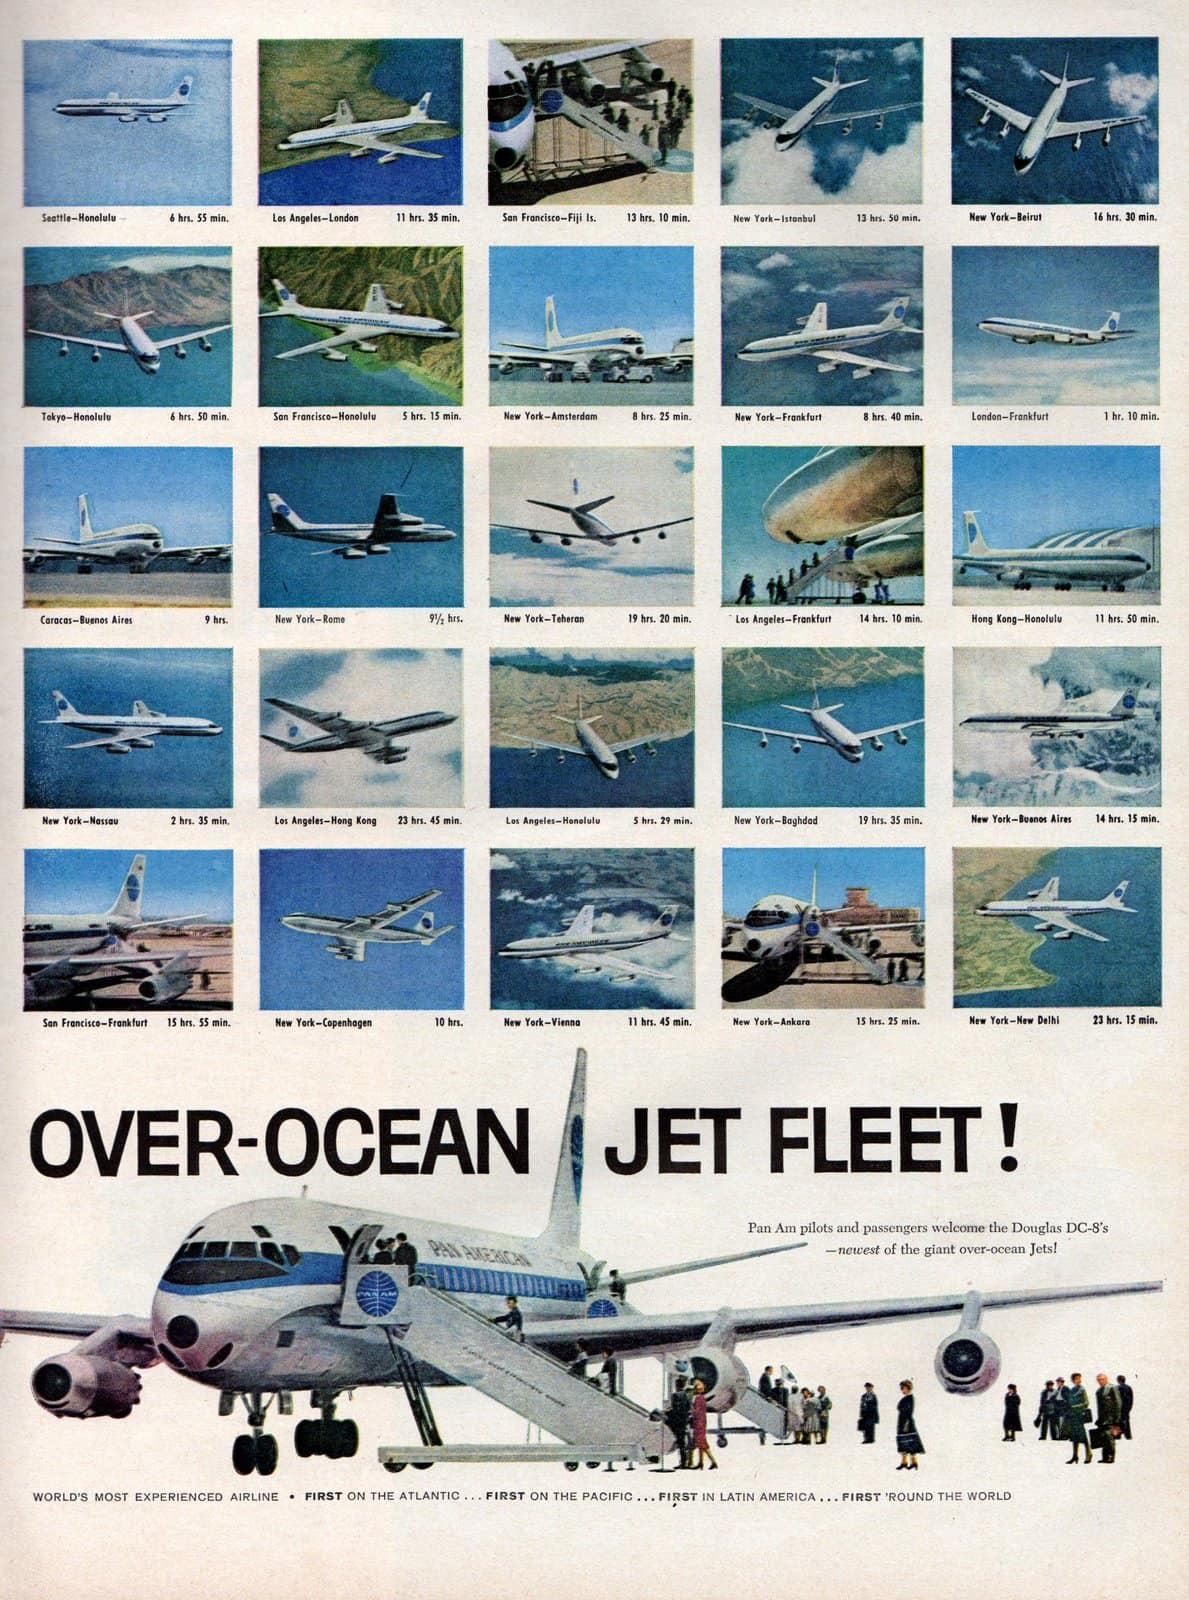 Pan Am adds DC-8 to their over-ocean jet fleet 1960 (2)